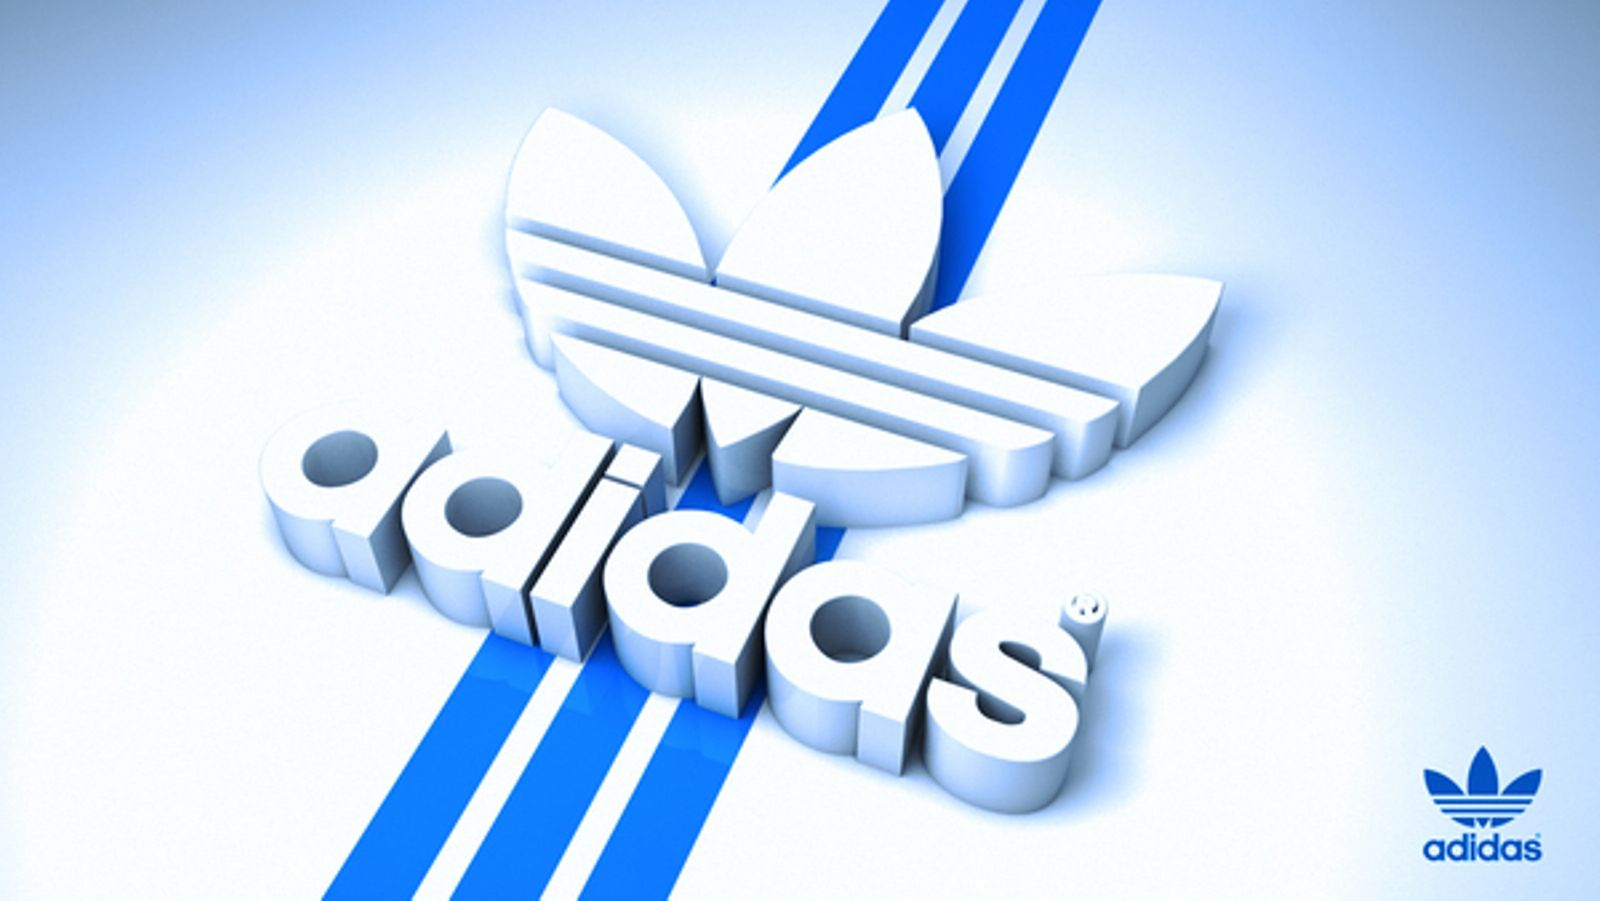 Adidas Logo Wallpaper Hd P Free Desktop Backgrounds And Wallpapers